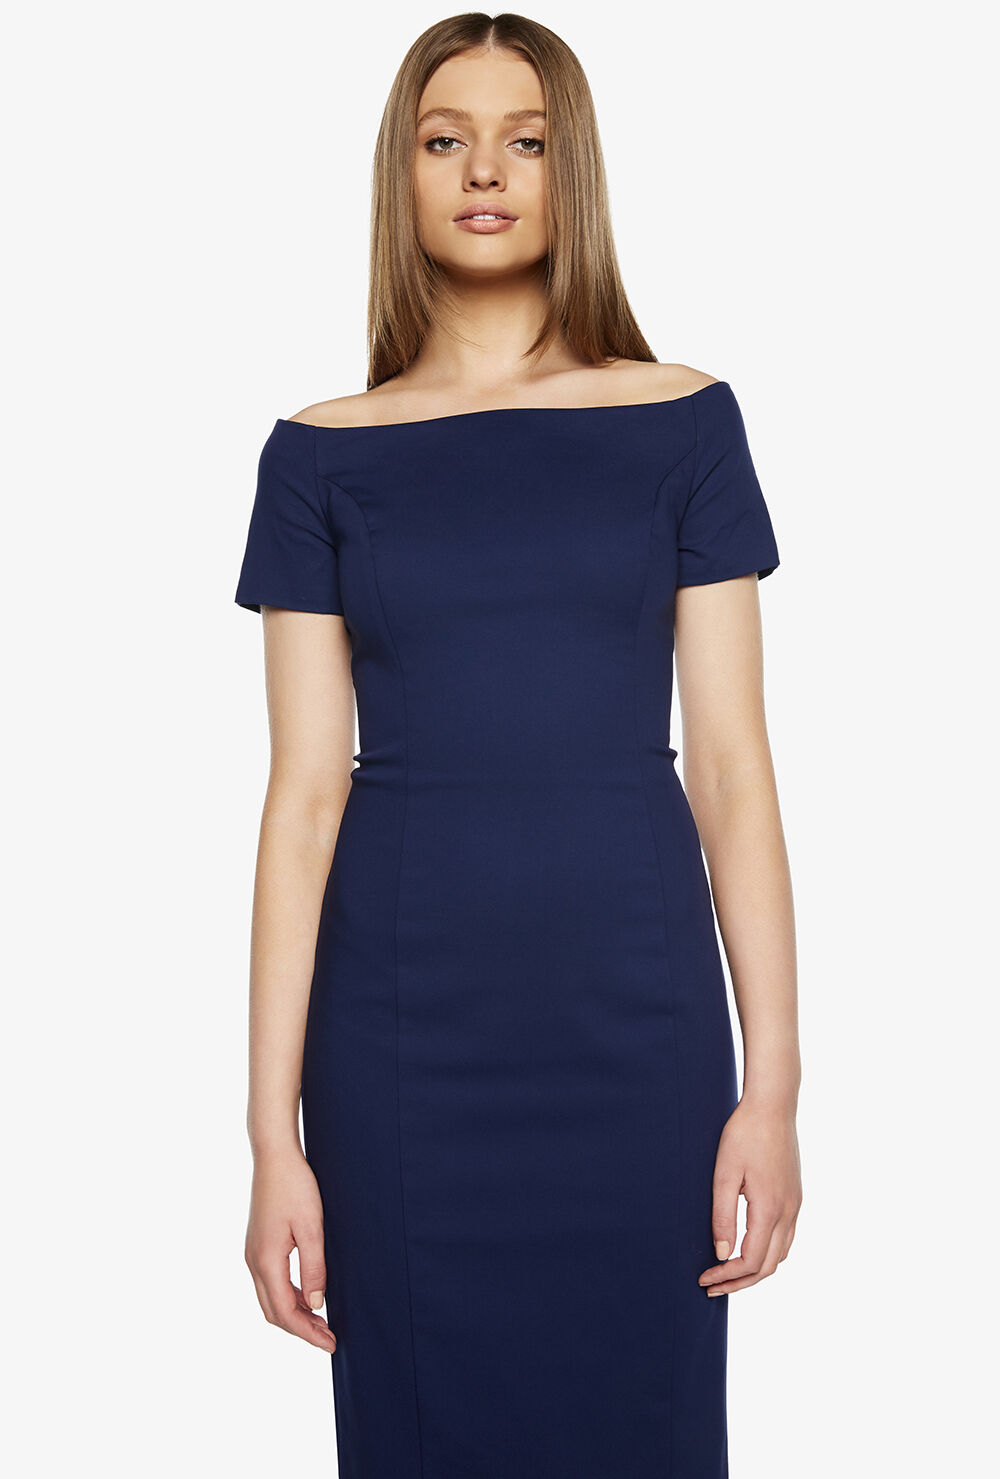 BUTTON SLEEVE DRESS in colour PATRIOT BLUE